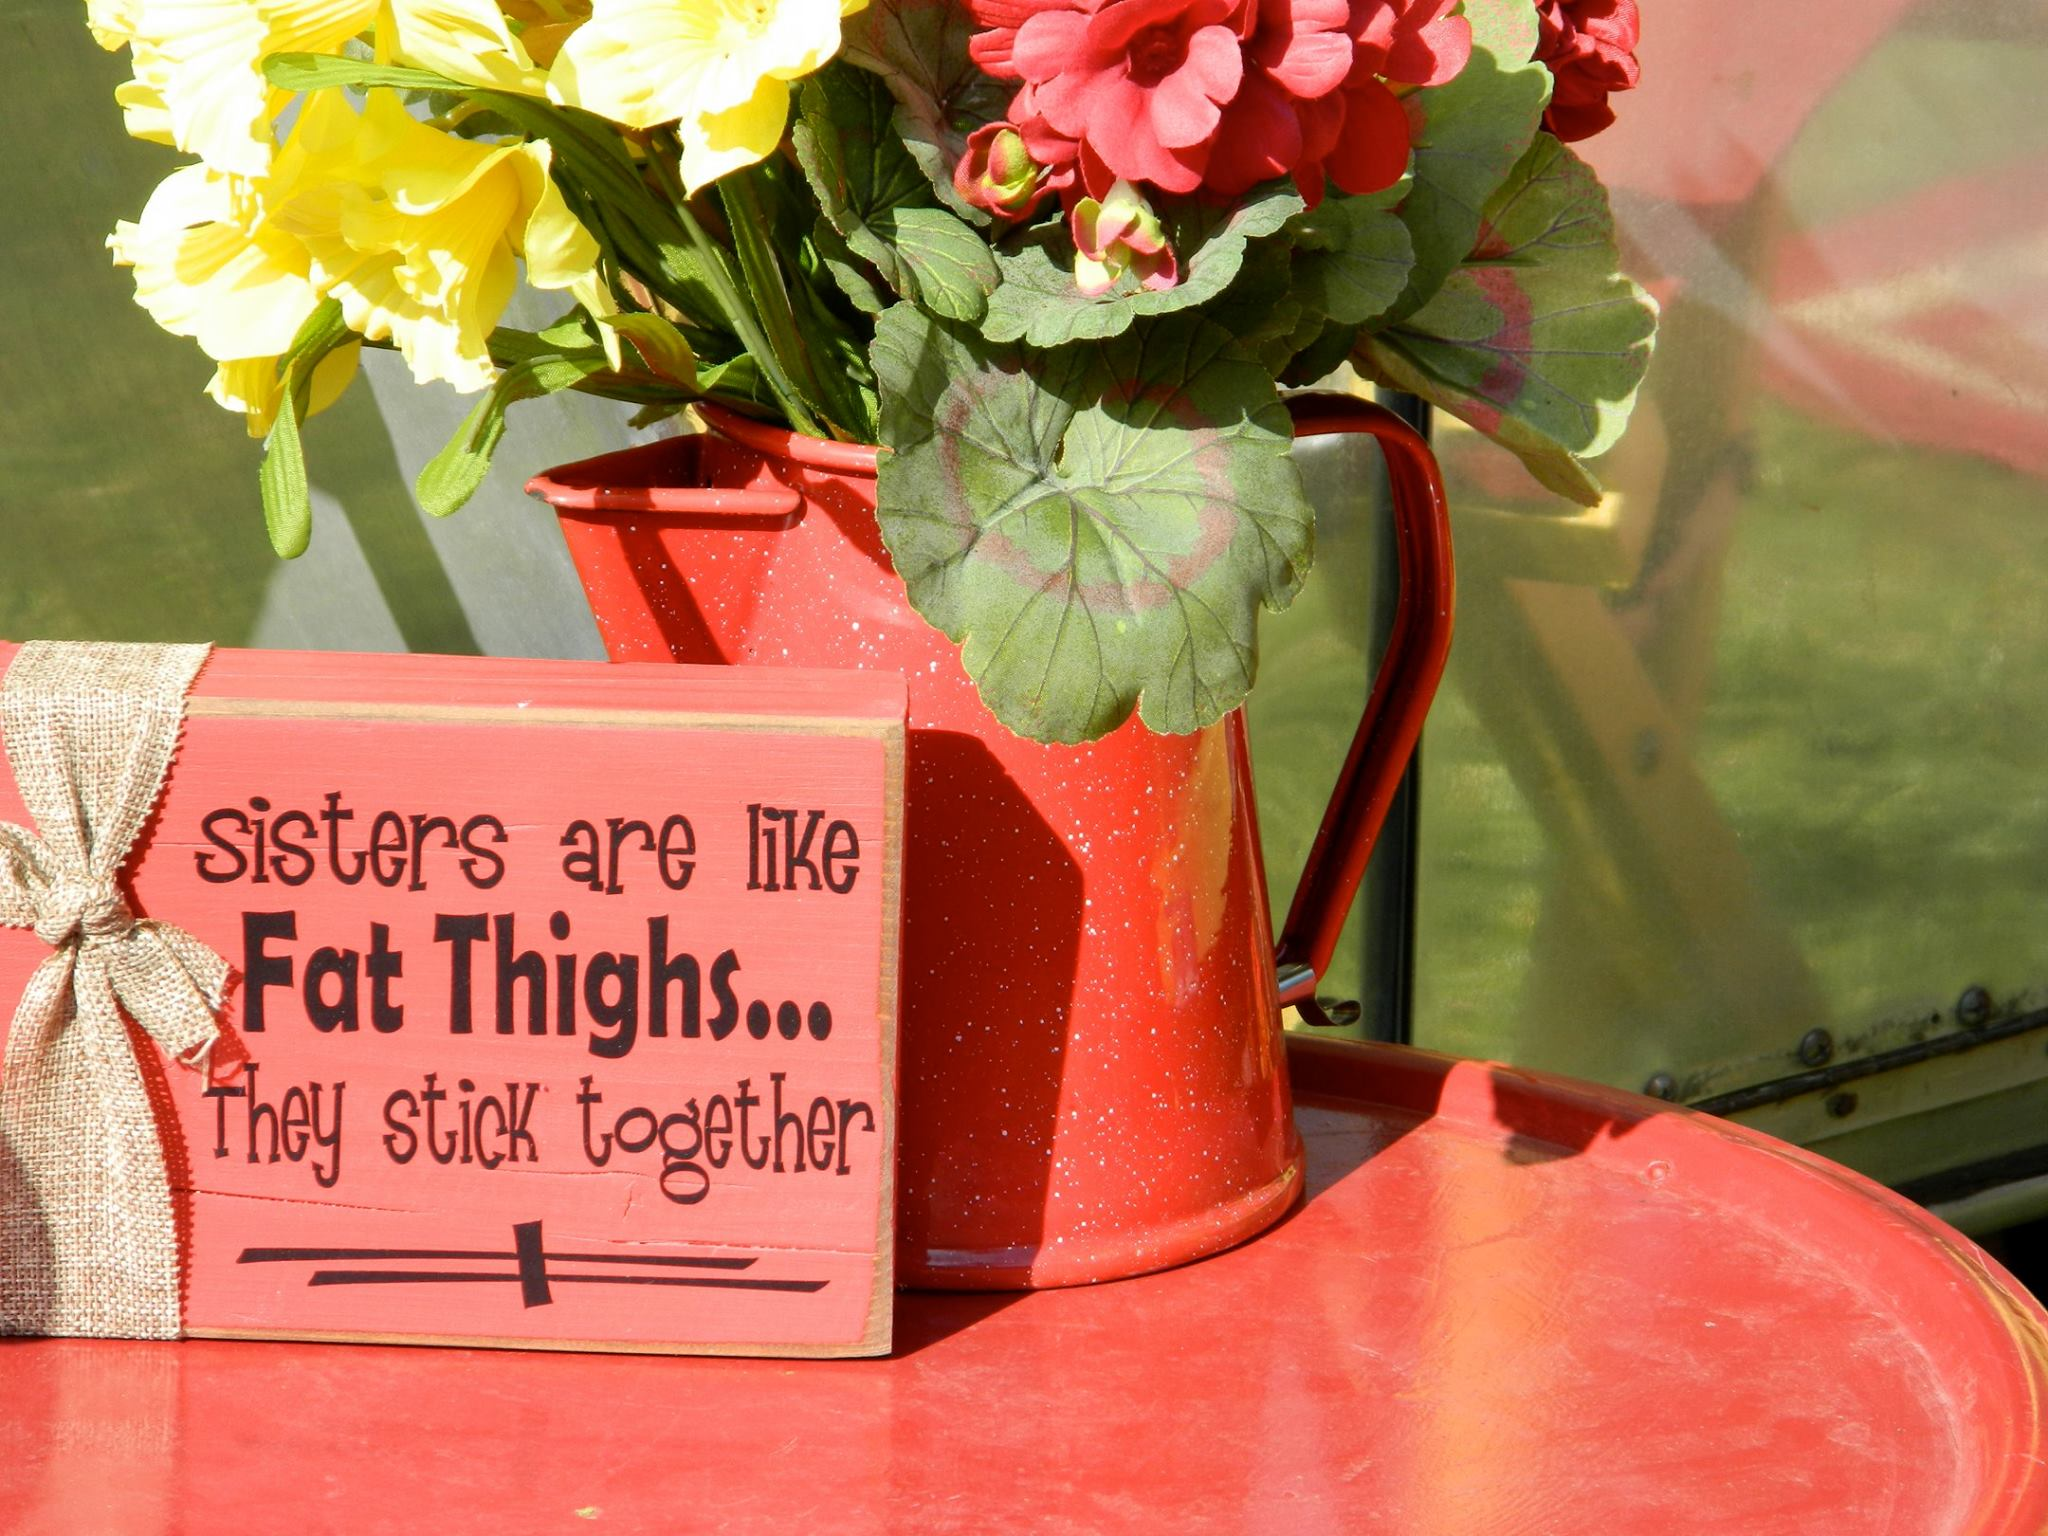 A Heart-Healthy Valentine's Message